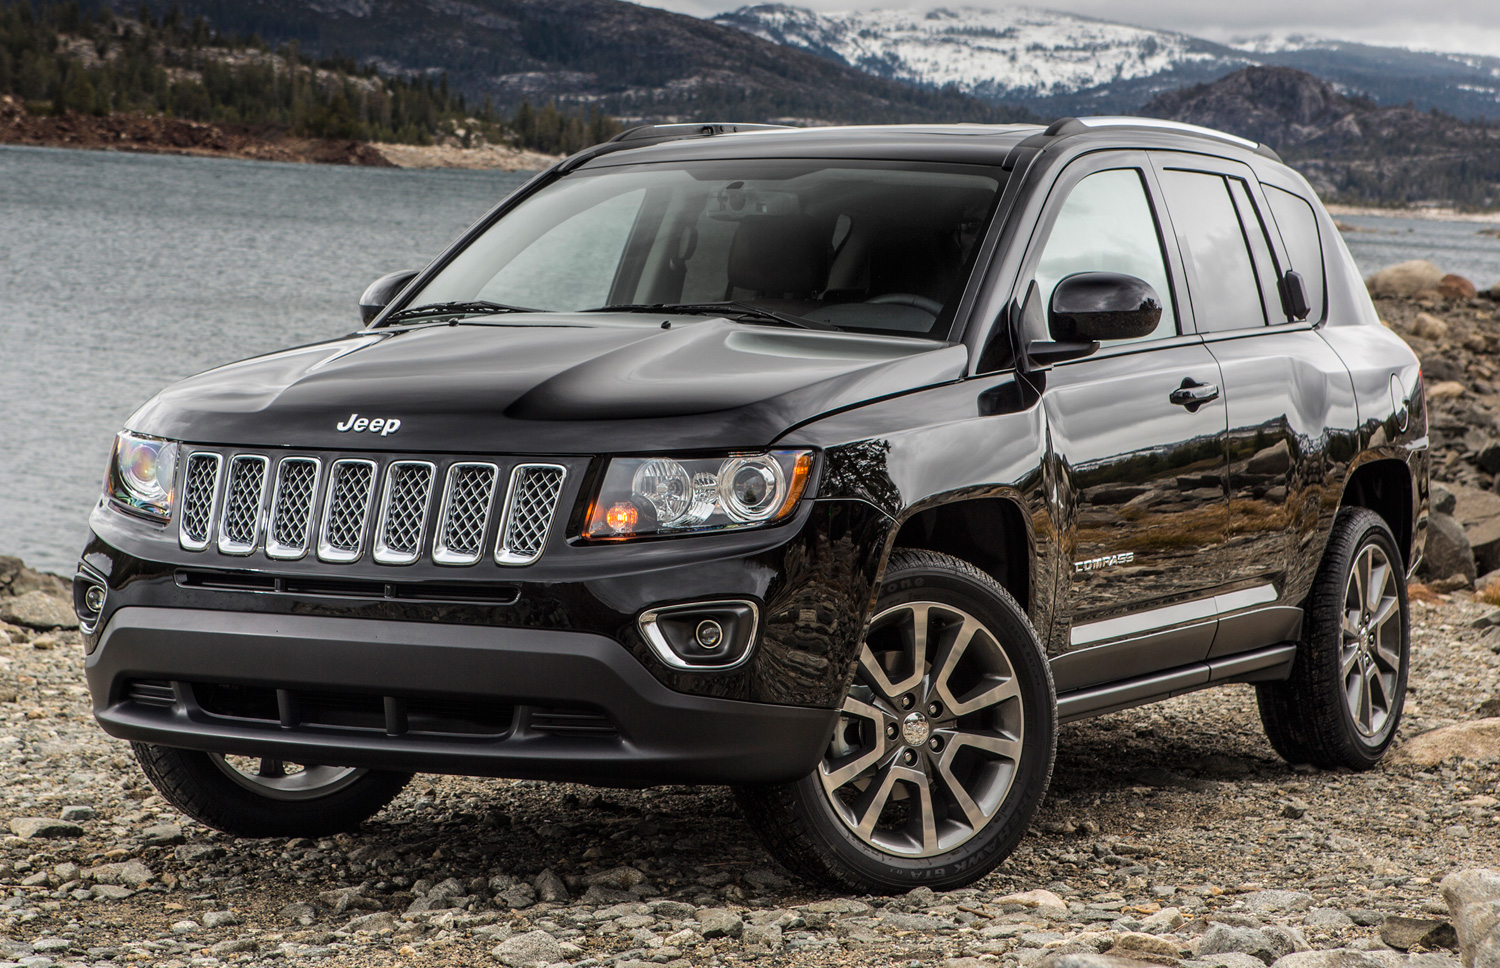 What is a jeep compass